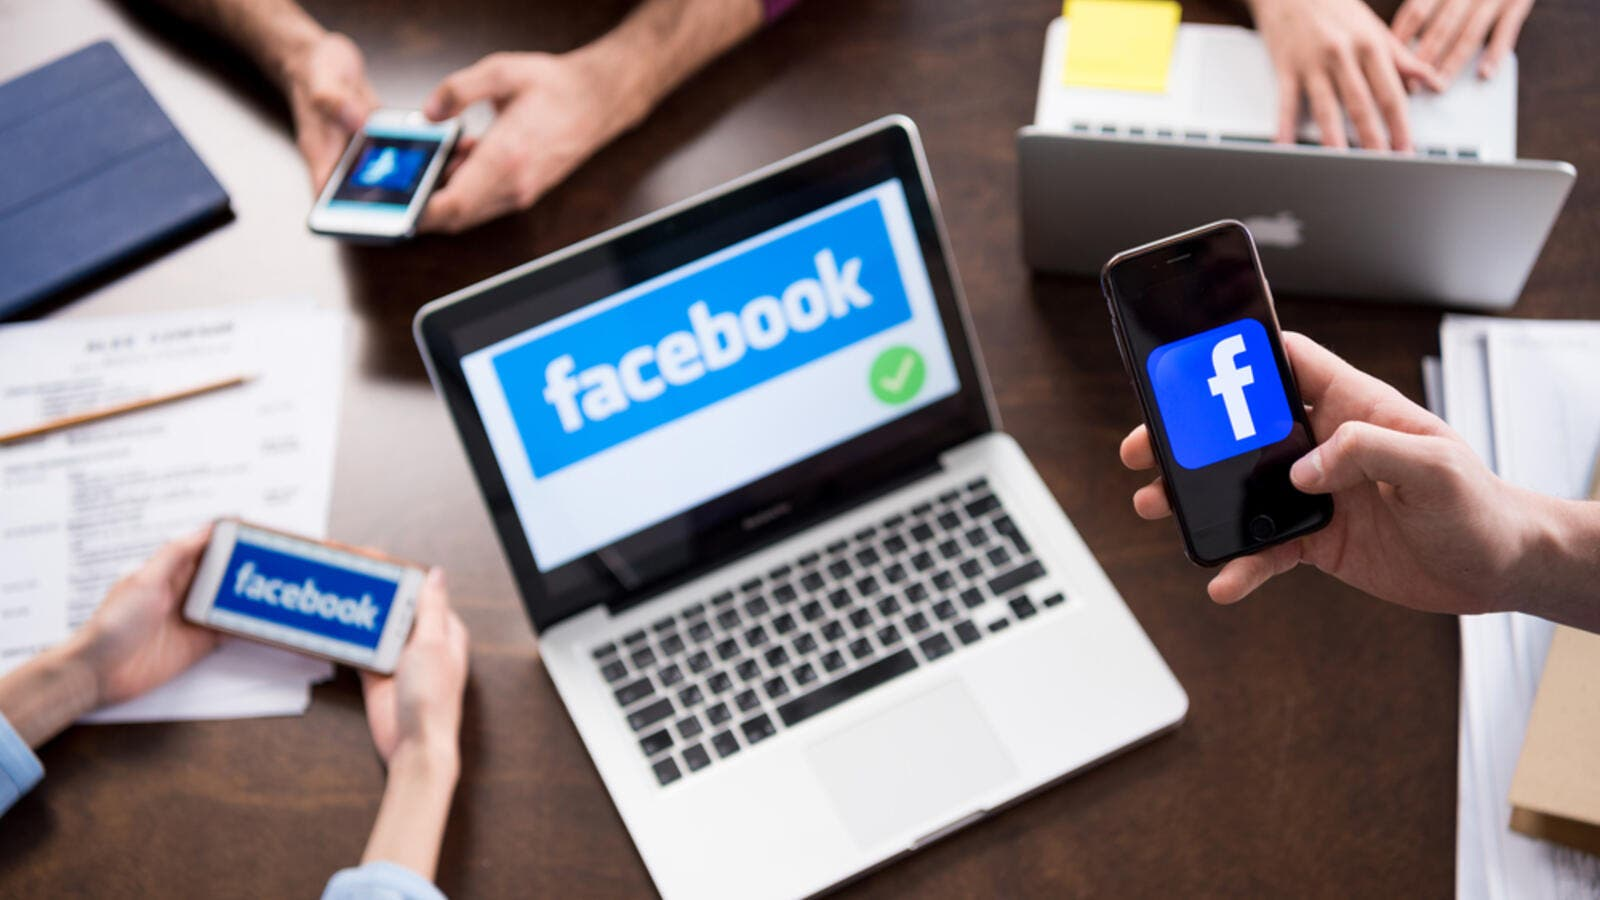 EU: Facebook Apps Helped Businesses Generate $229 Billion in 2019